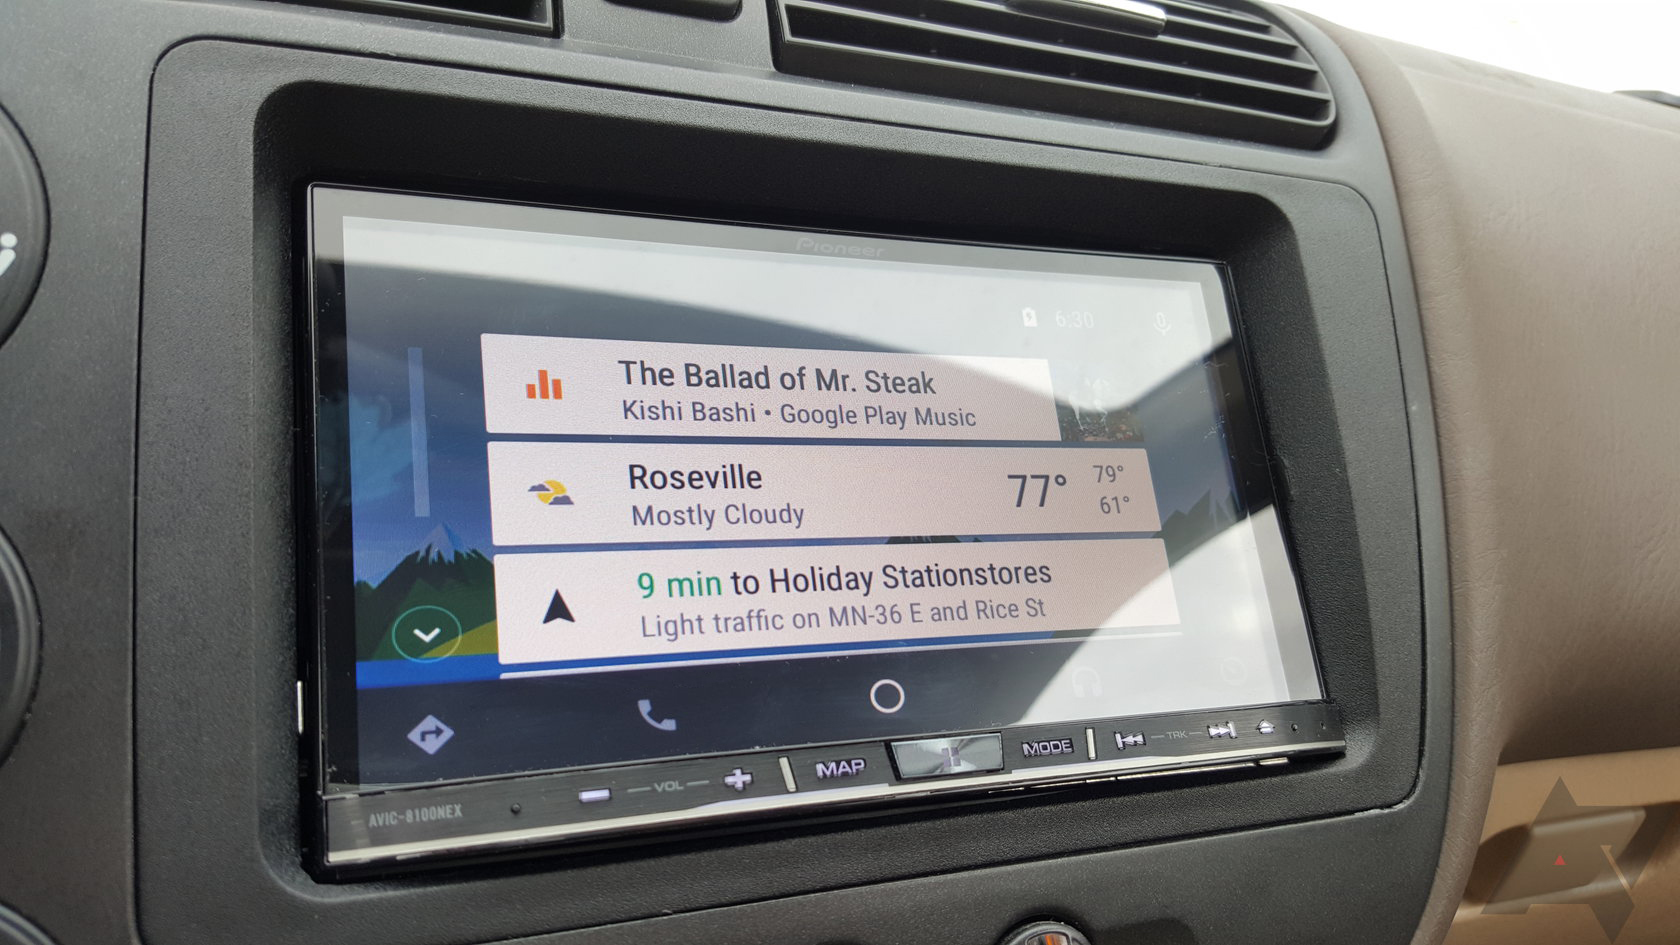 new android auto update includes compatibility fixes for samsung galaxy s4 and s5 on sprint at. Black Bedroom Furniture Sets. Home Design Ideas